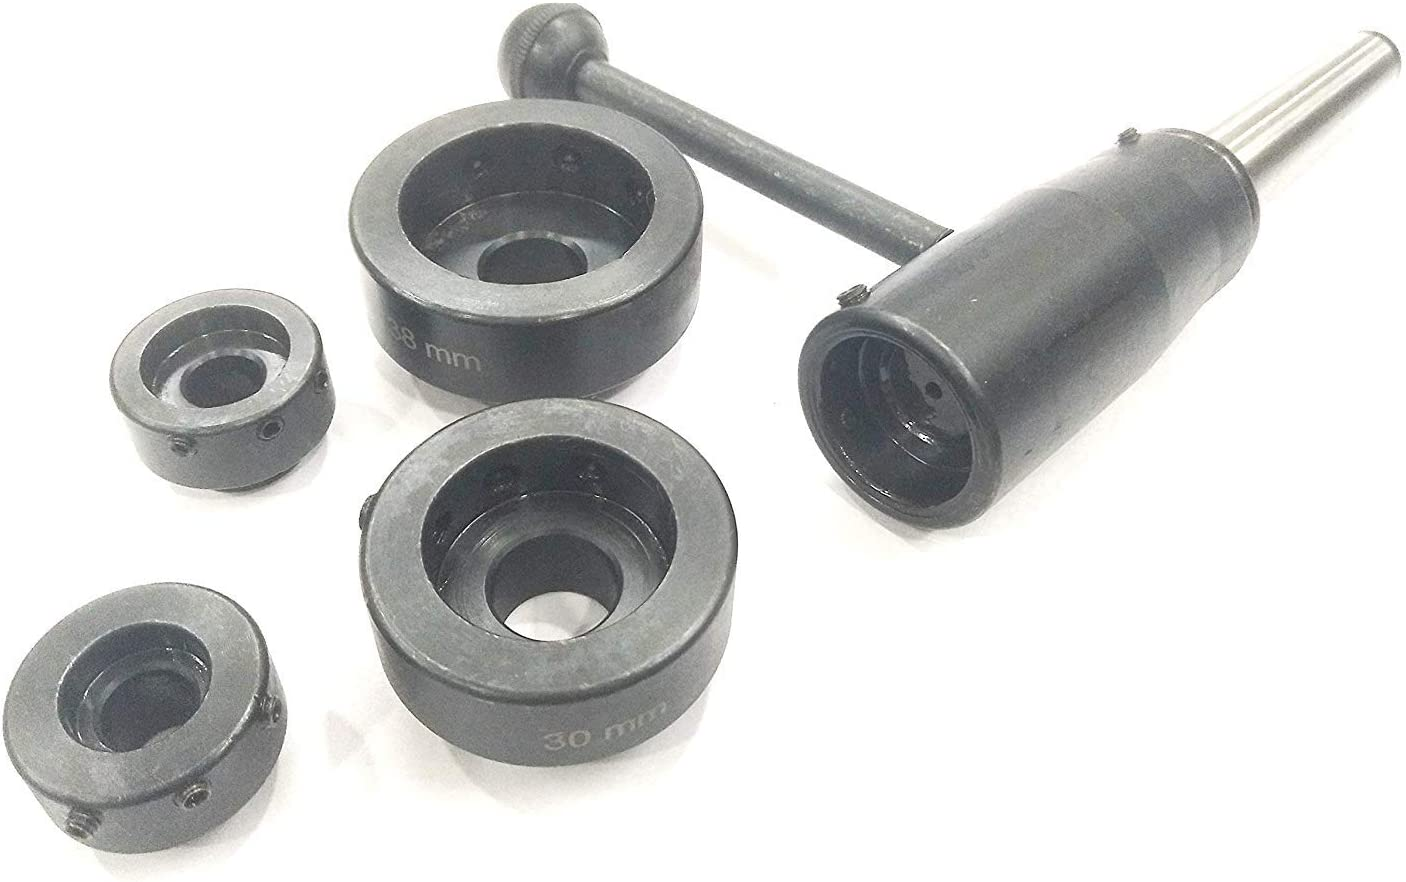 Morse Taper 2MT Lathe Tailstock Metric DIE Holder for Threading ON Lathe Machine-Engineering Tools Accessories